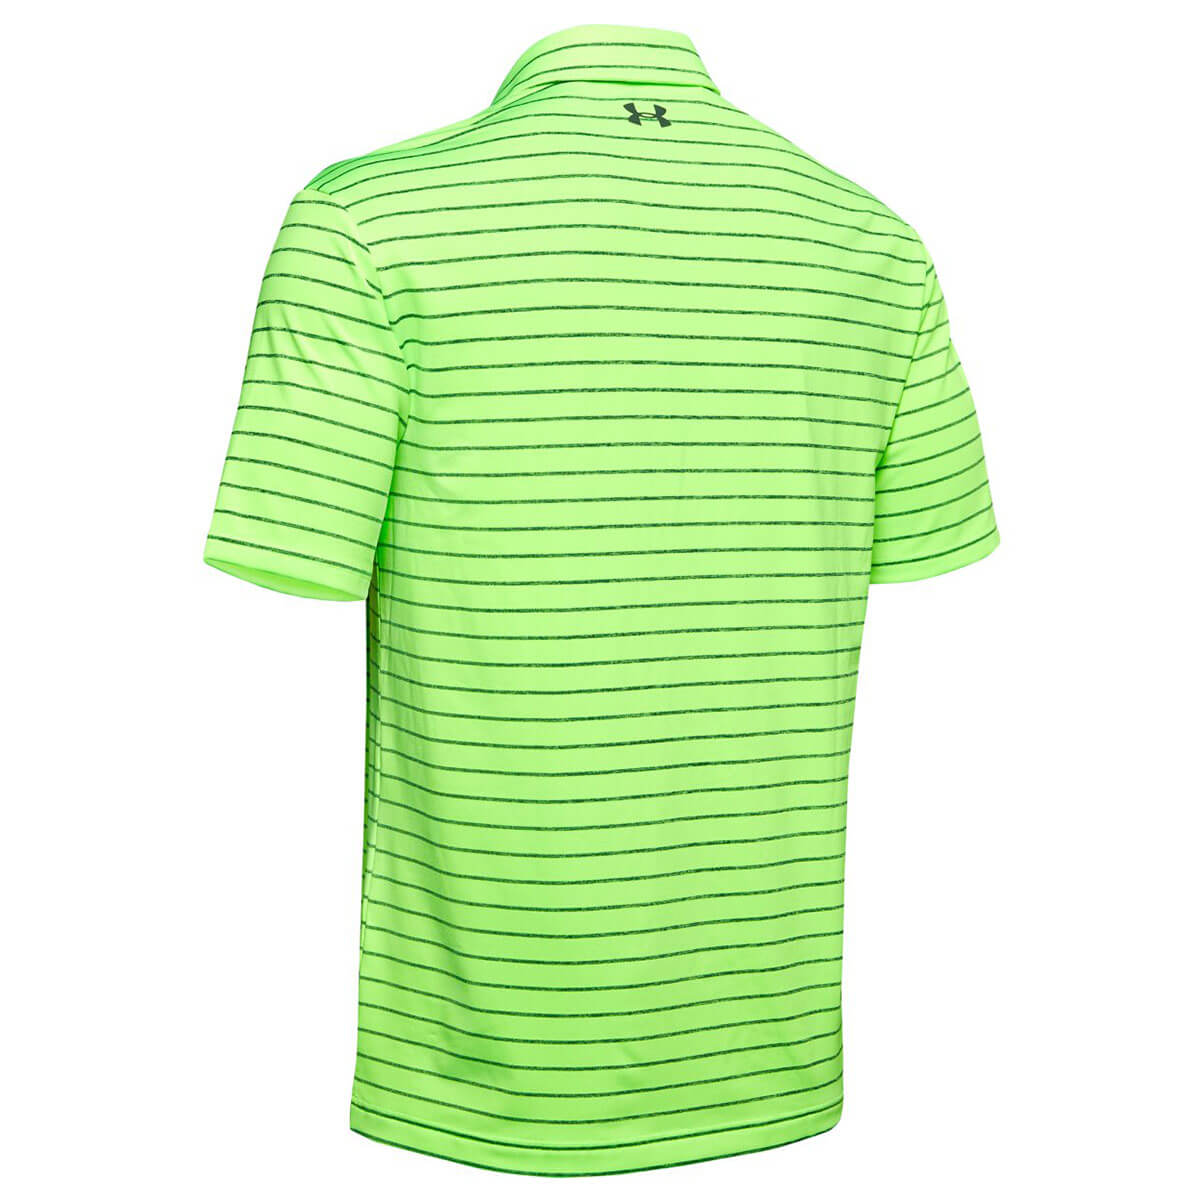 Under-Armour-Mens-2019-Playoff-Polo-2-0-Breathable-Light-Stretch-Polo-Shirt thumbnail 75